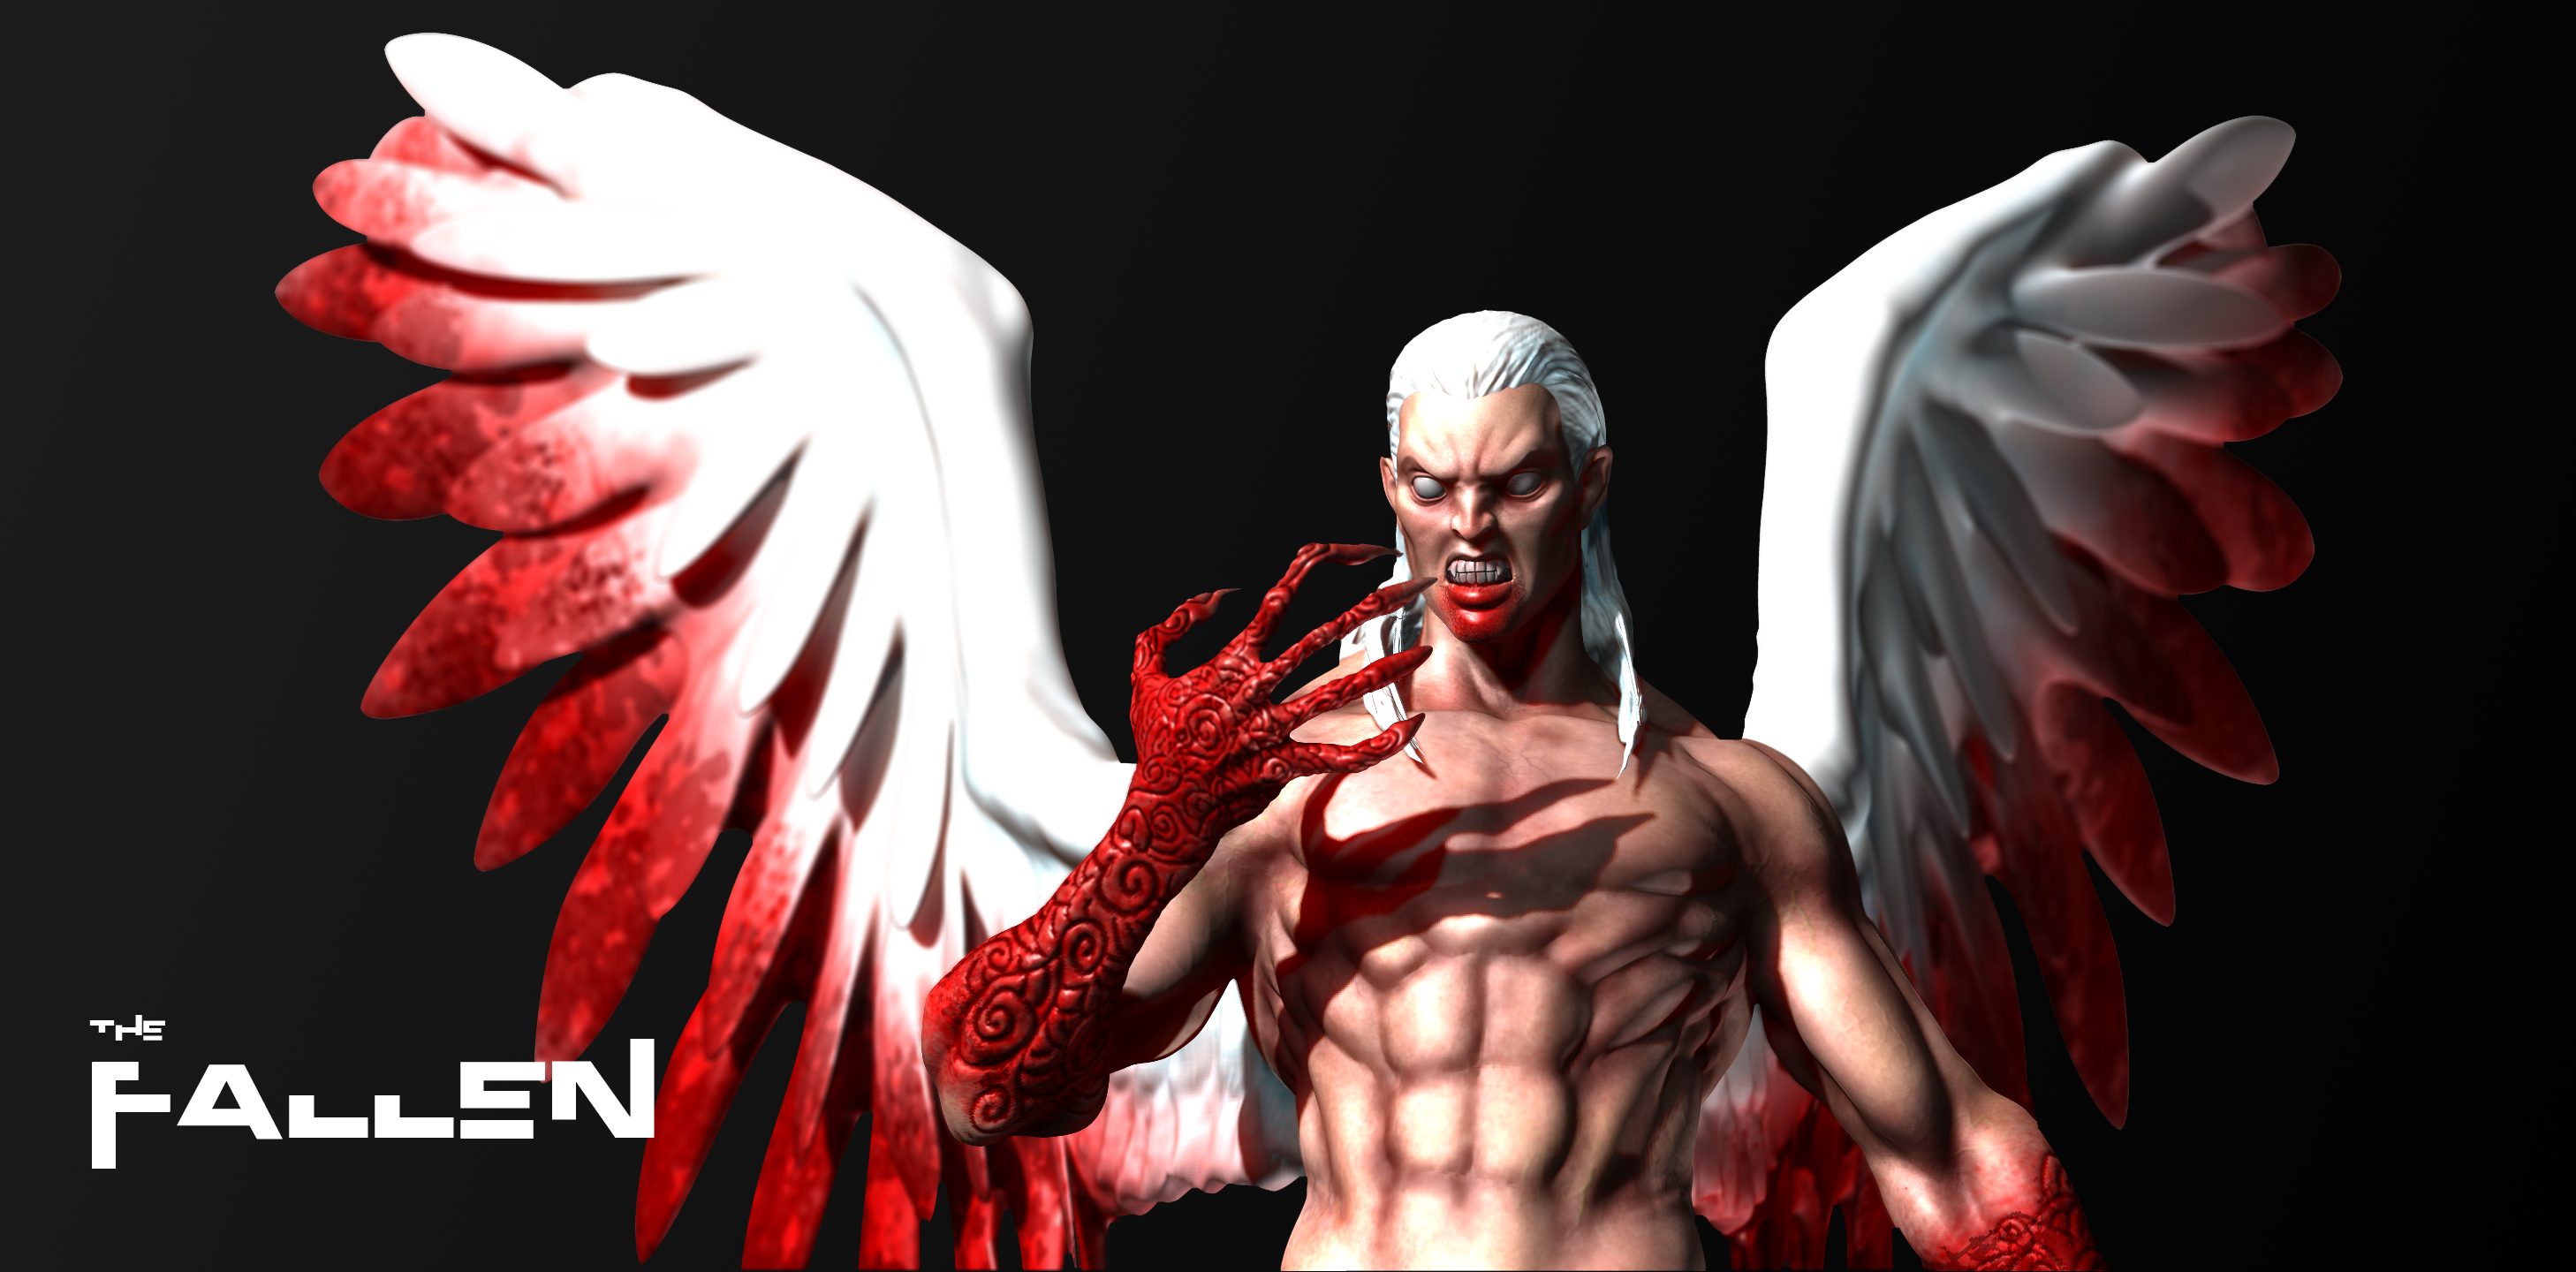 3D modelling - The Fallen (another perspective) by SaTTaR